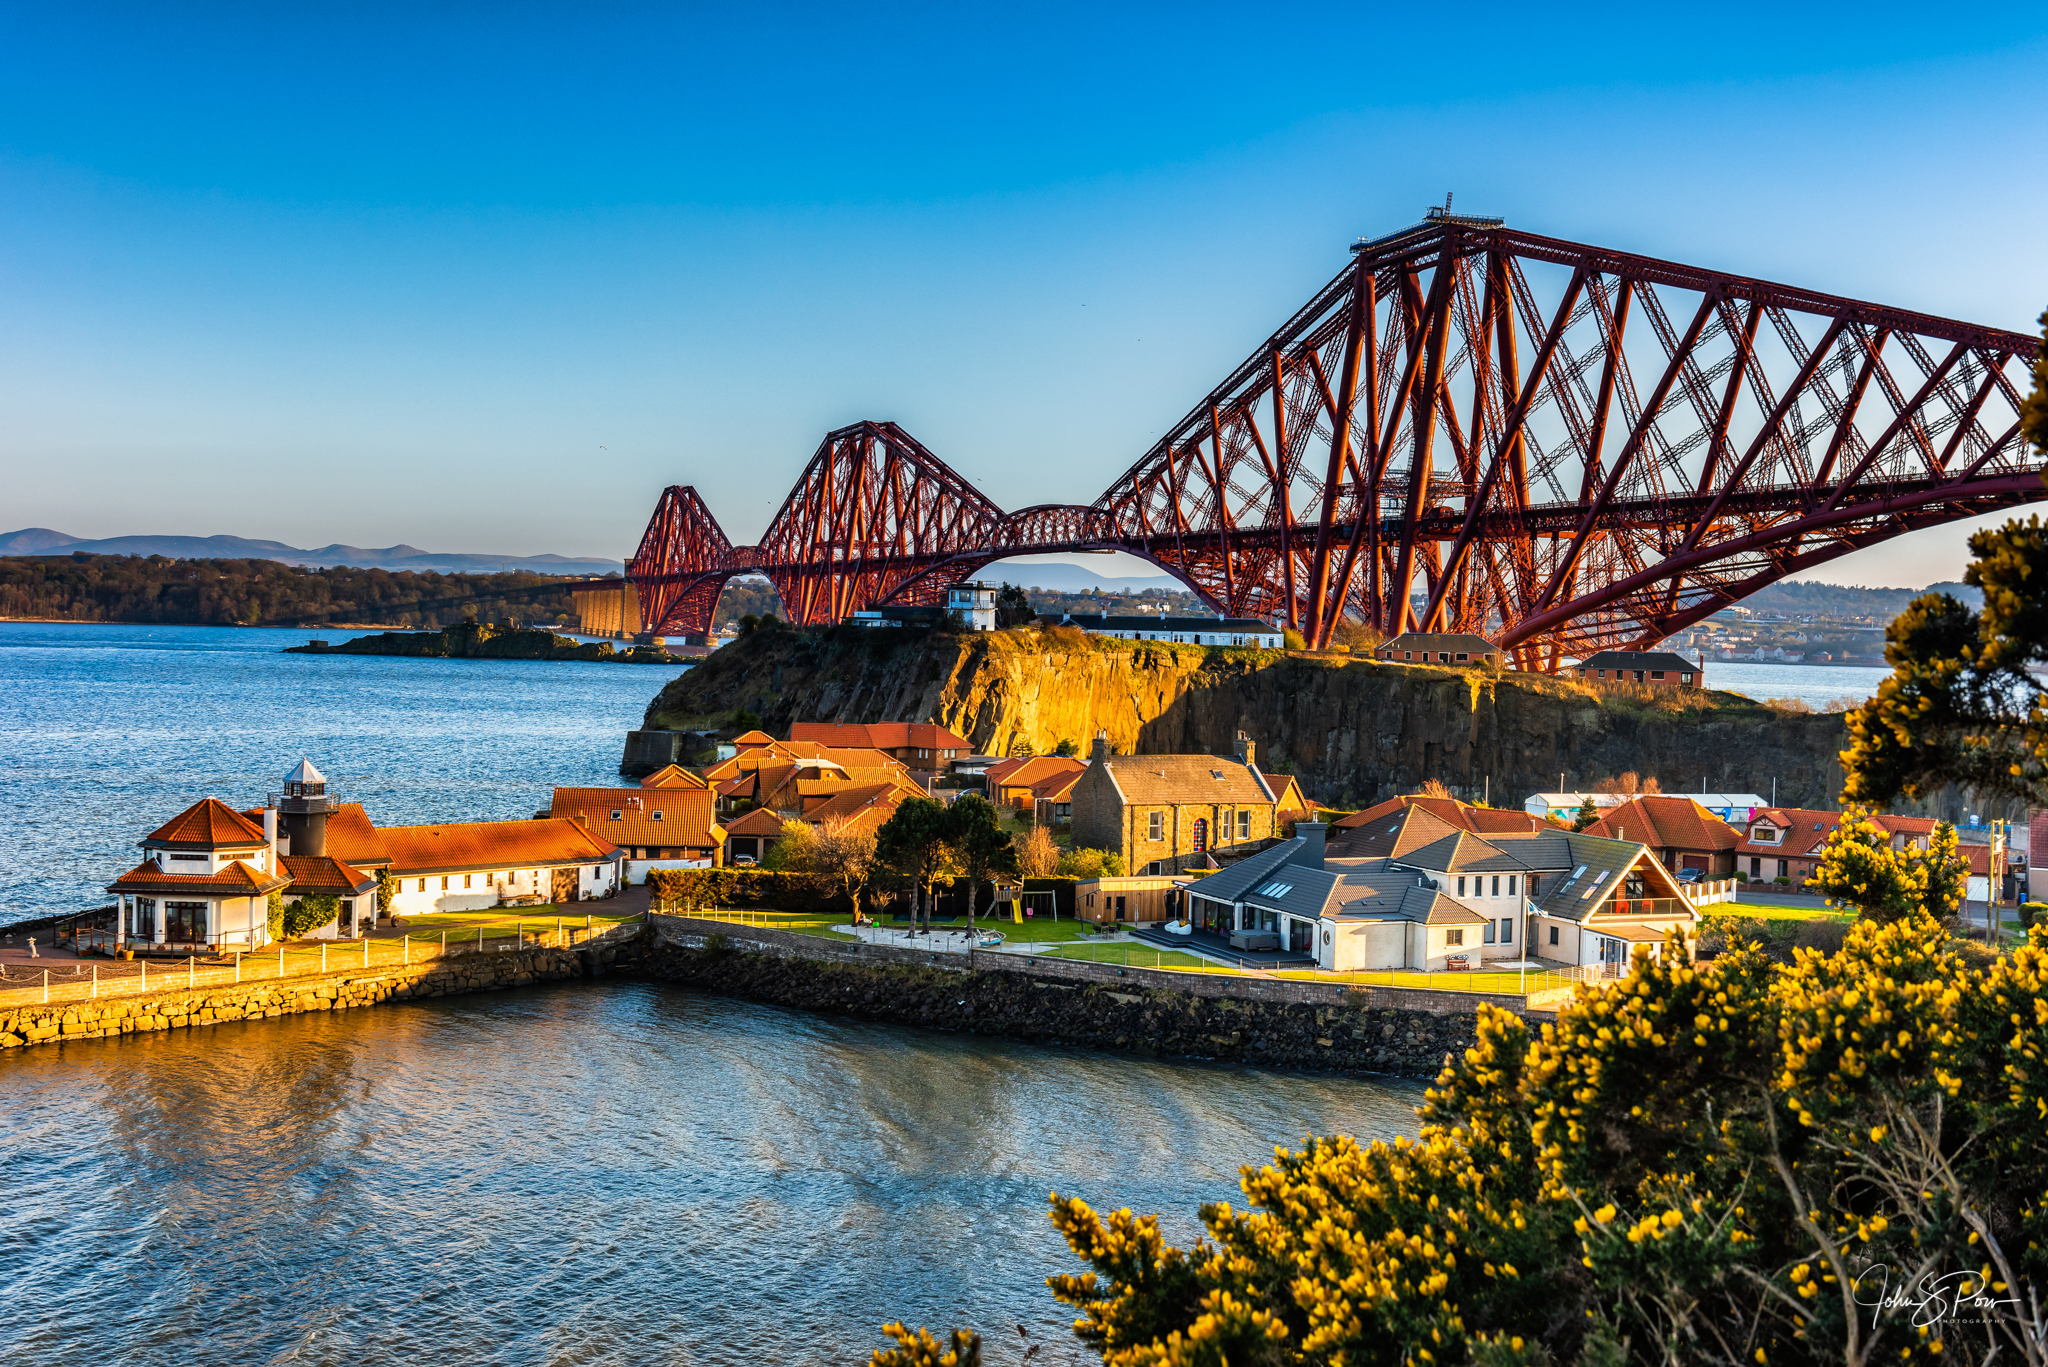 The Forth Bridge seen from the east side.